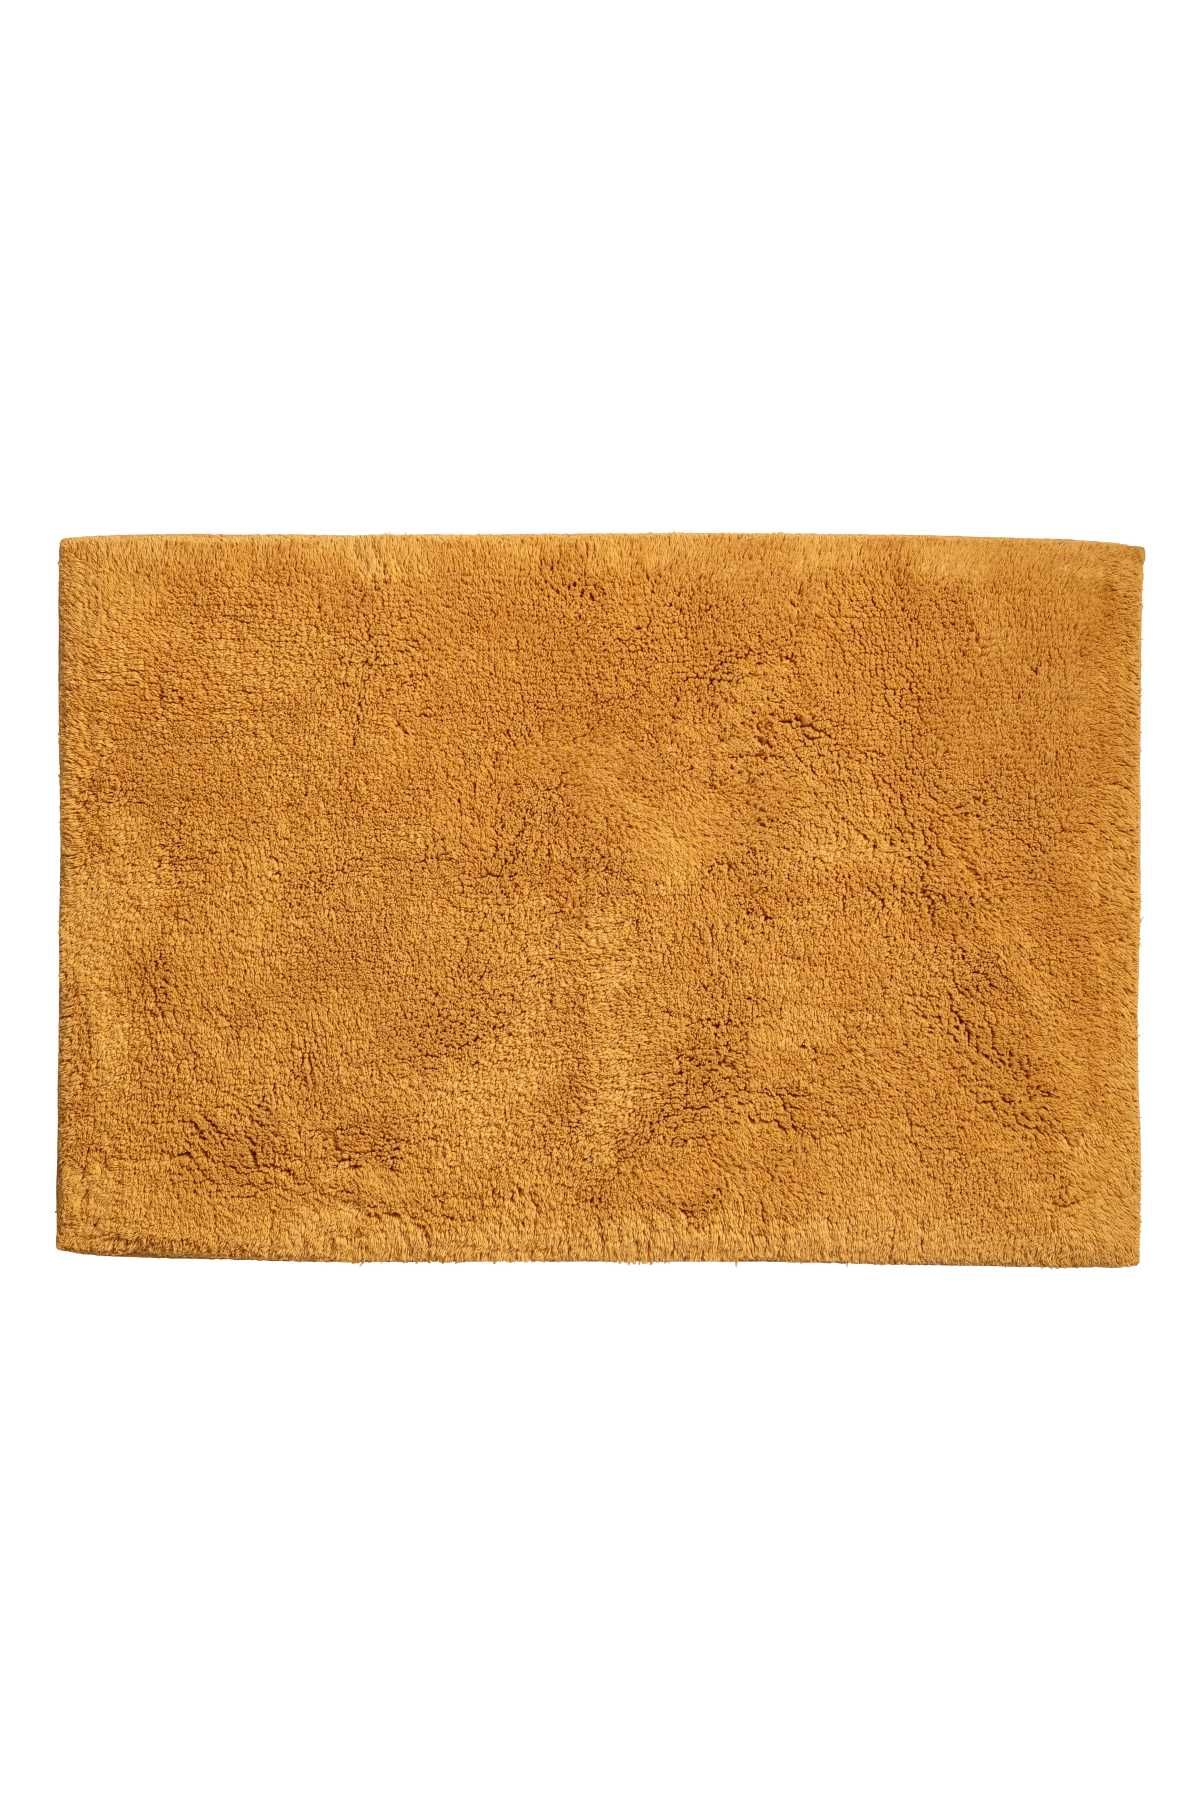 Mustard Yellow Bath Mat In Thick Cotton Terry With Tape Trim Non Slip Protection At Back Not For Use On Heated Surfa Yellow Bath Mats Colorful Bath Bath Mat